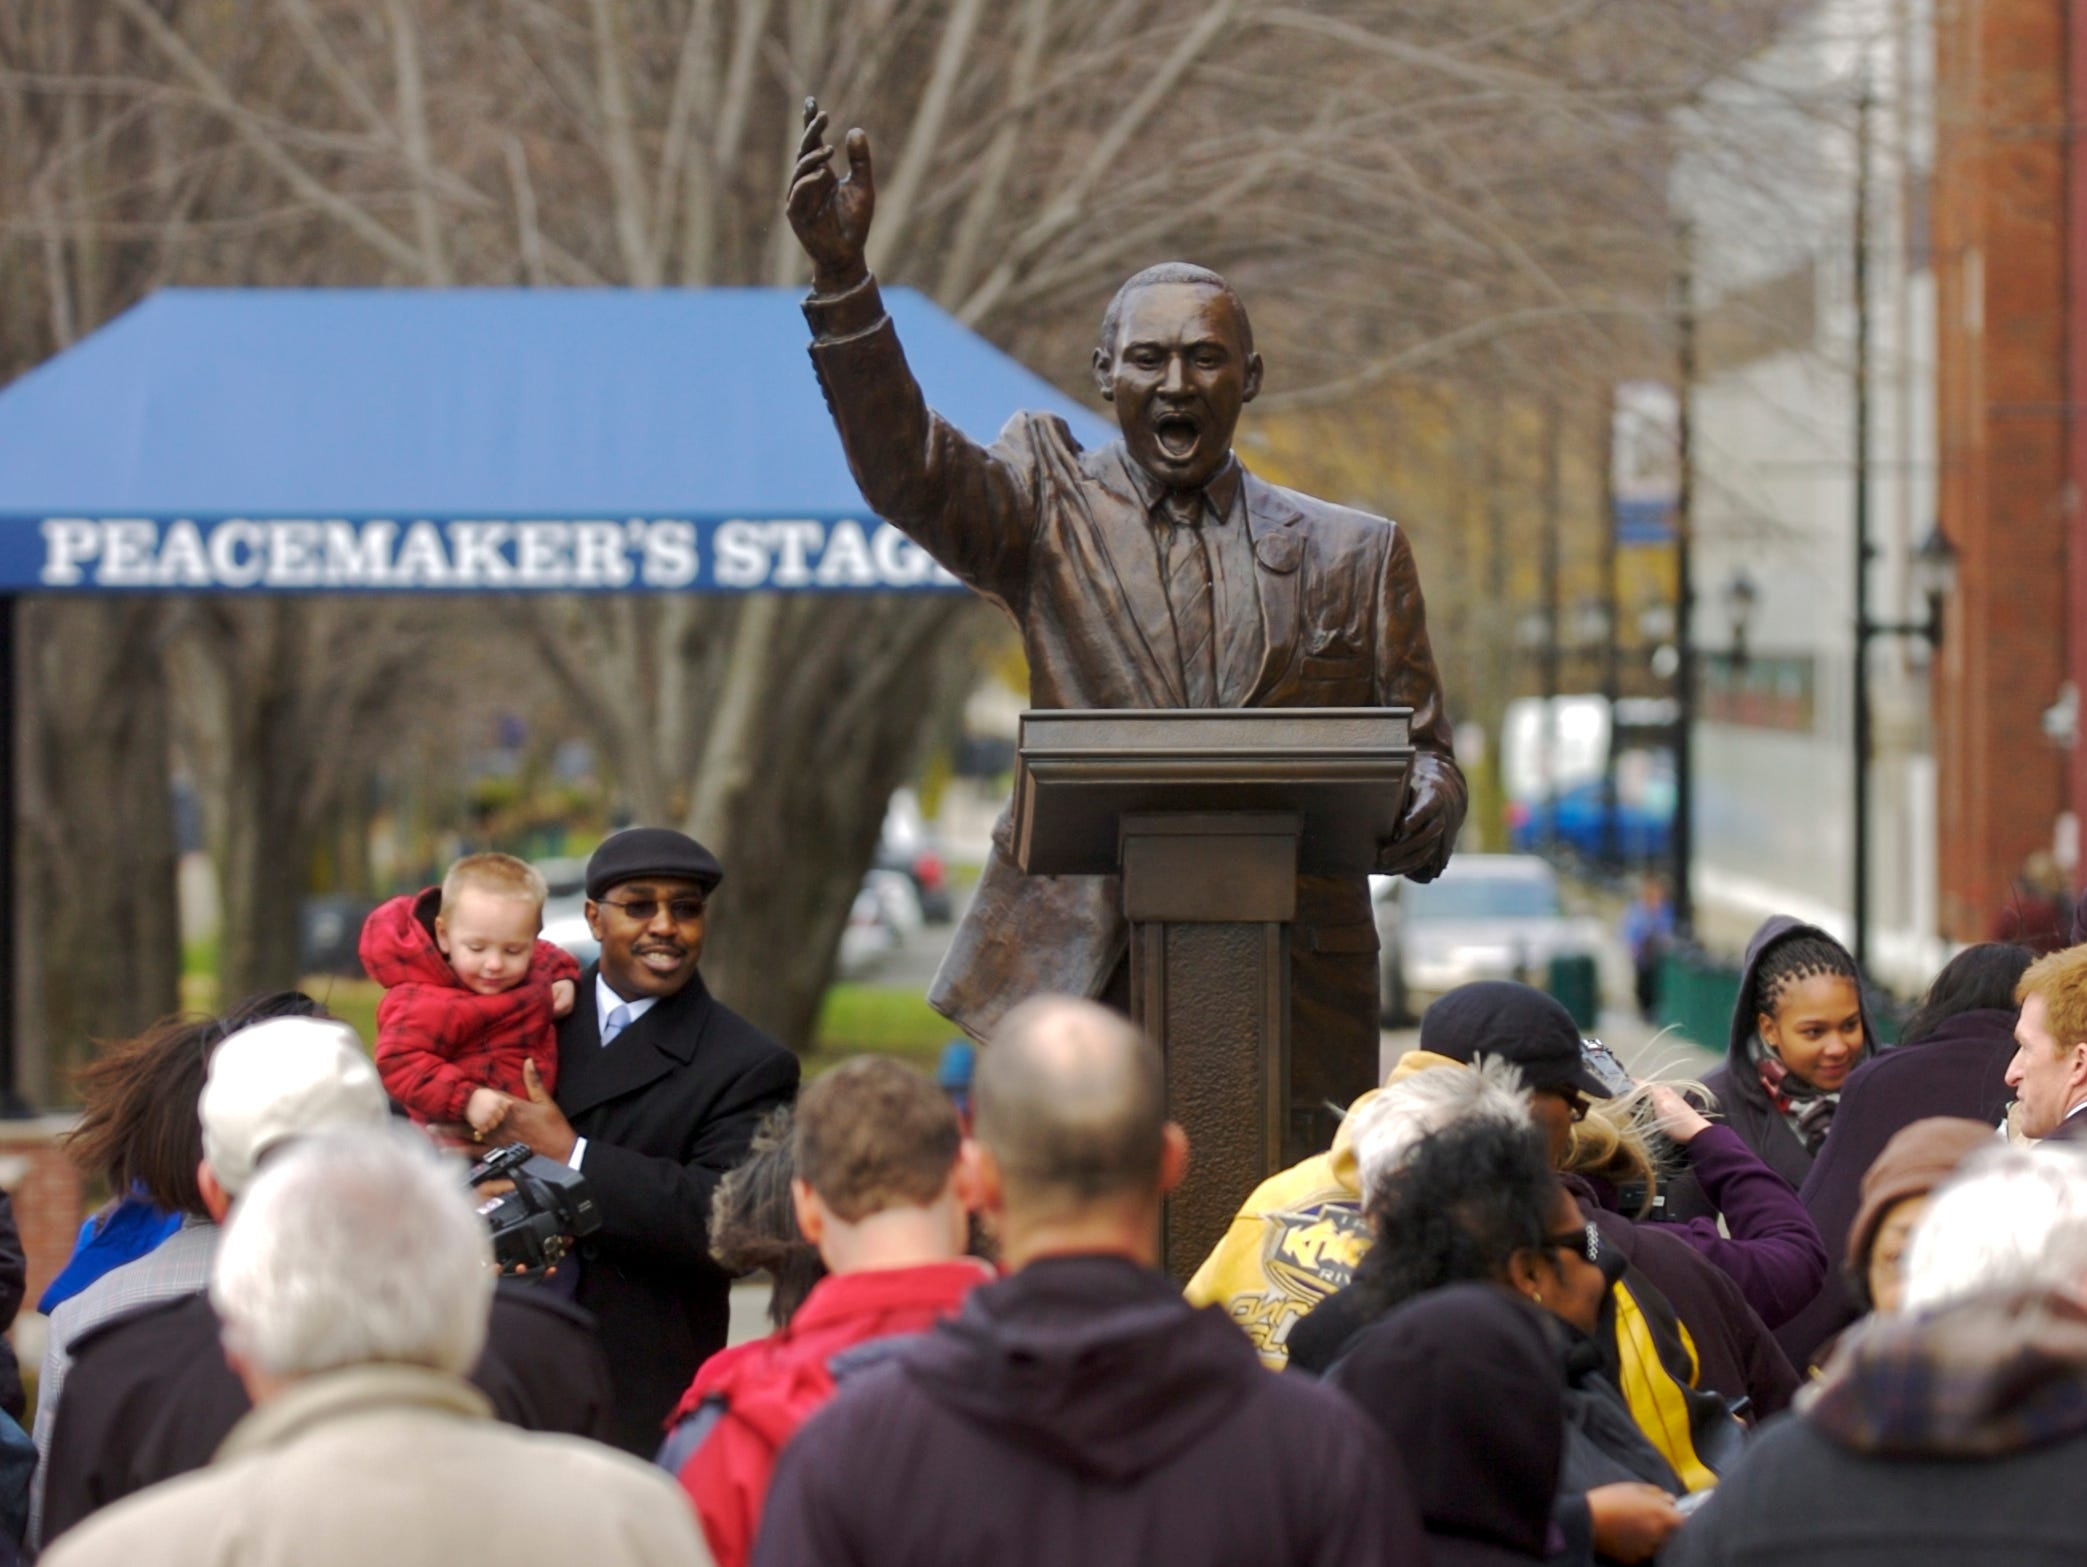 2010: The Broome County Martin Luther King, Jr. Commission was joined by city and state official Wednesday to unveil the MLK statue and Peacemakers Stage on the River Trail in downtown Binghamton.